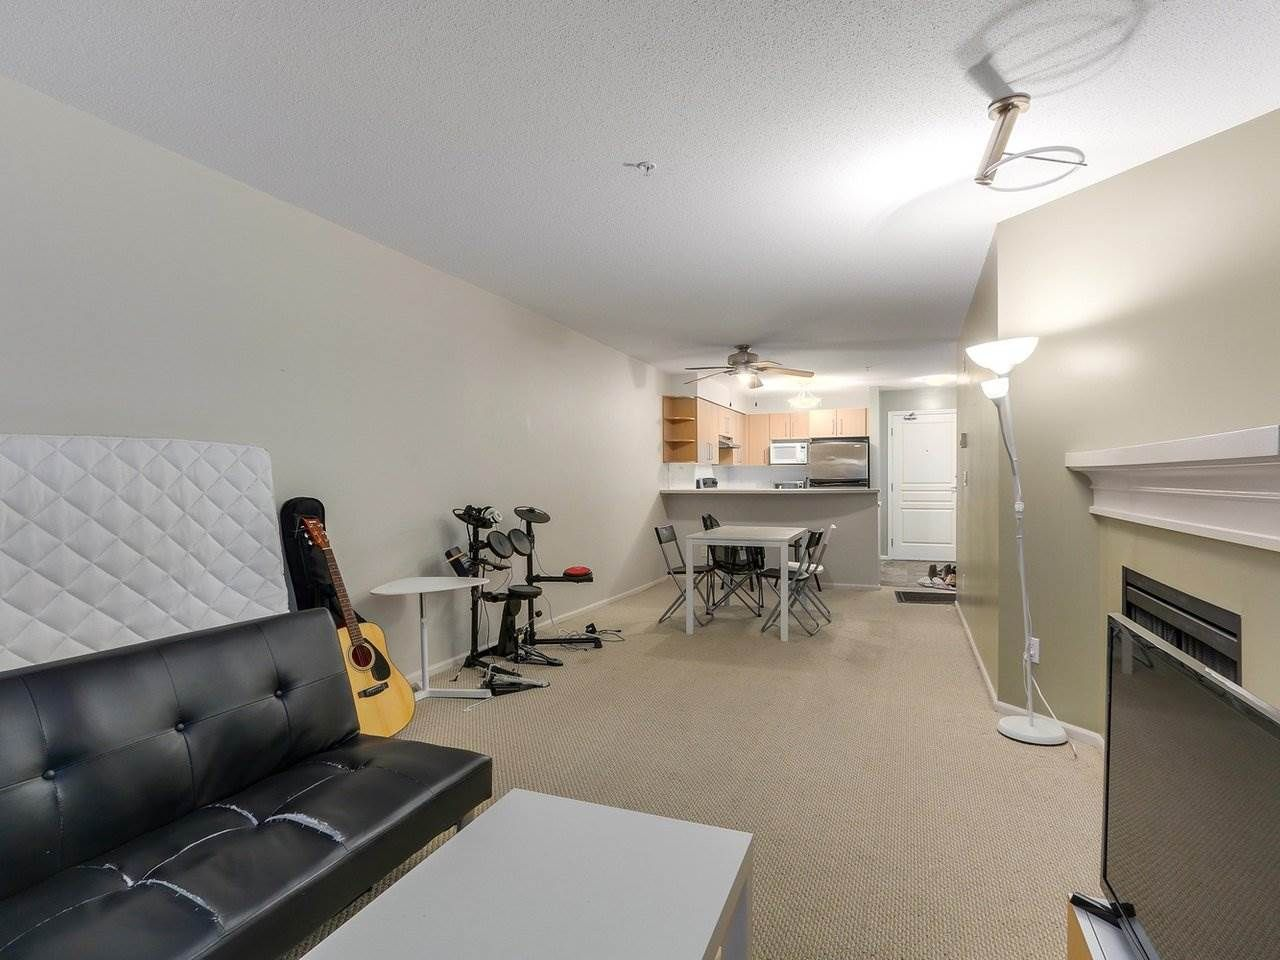 Photo 5: Photos: 205 3388 MORREY Court in Burnaby: Sullivan Heights Condo for sale (Burnaby North)  : MLS®# R2326824